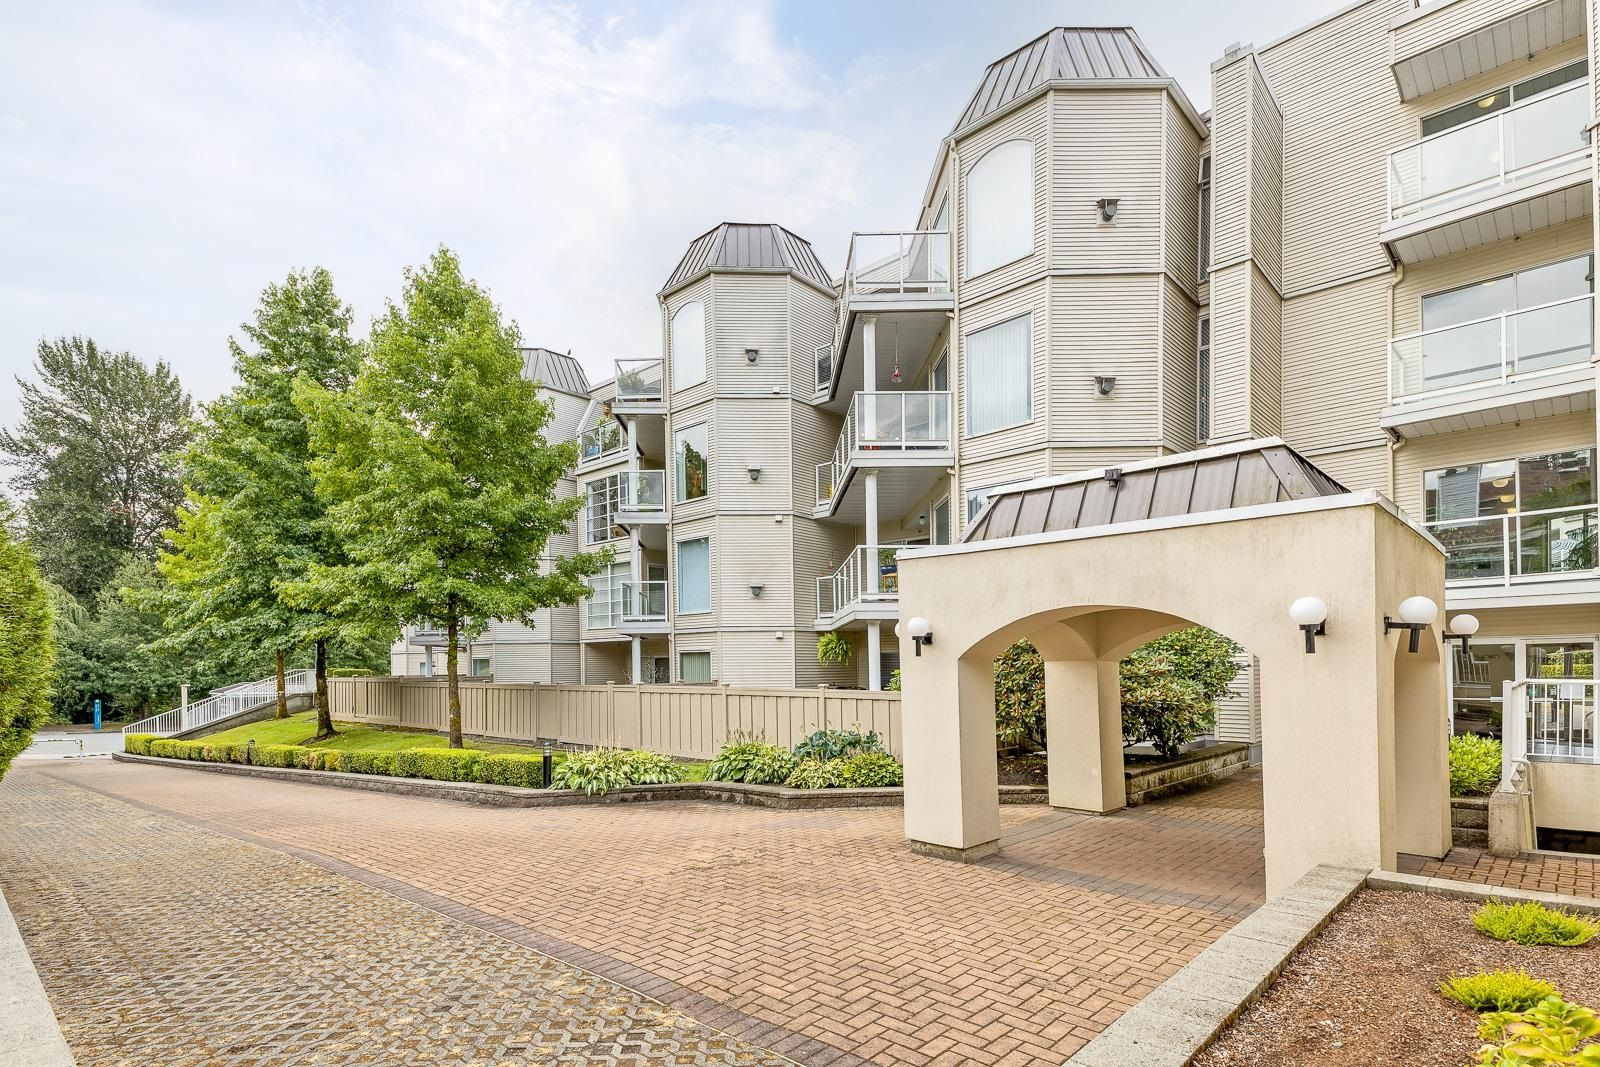 """Main Photo: 311 1220 LASALLE Place in Coquitlam: Canyon Springs Condo for sale in """"MOUNTAINSIDE"""" : MLS®# R2607989"""